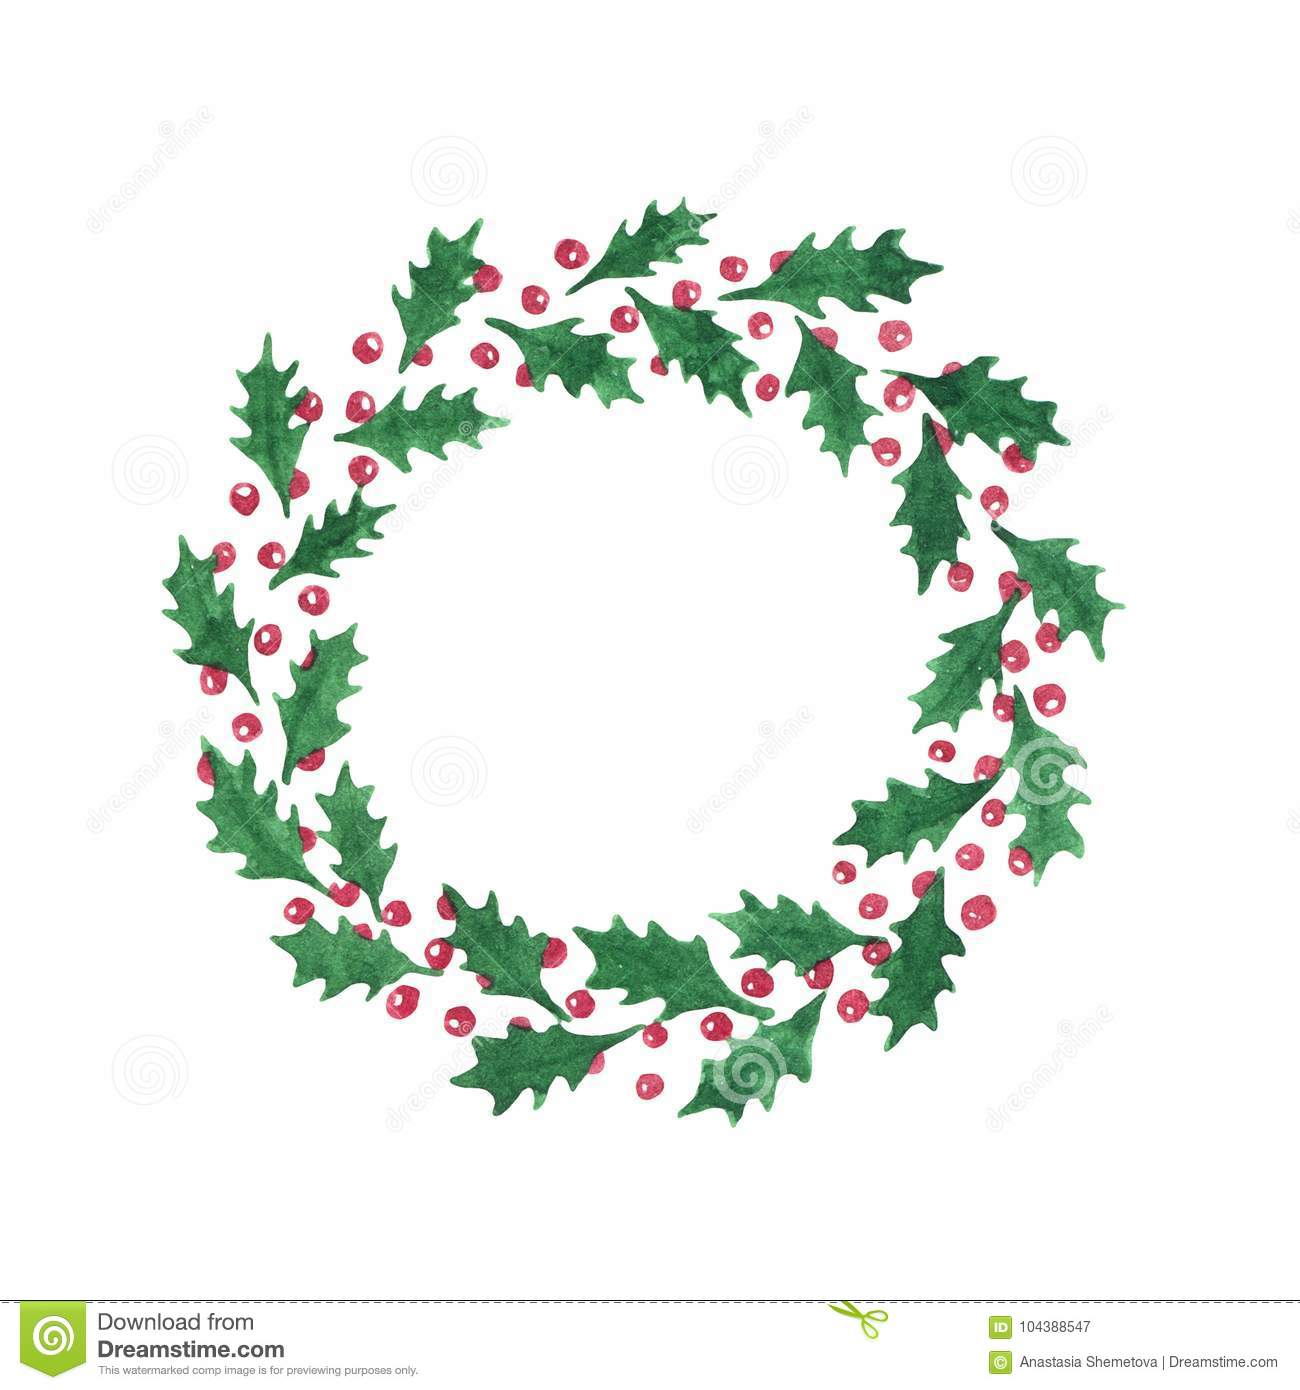 Watercolor Holly Leaves Wreath With Red Berries Isolated On The